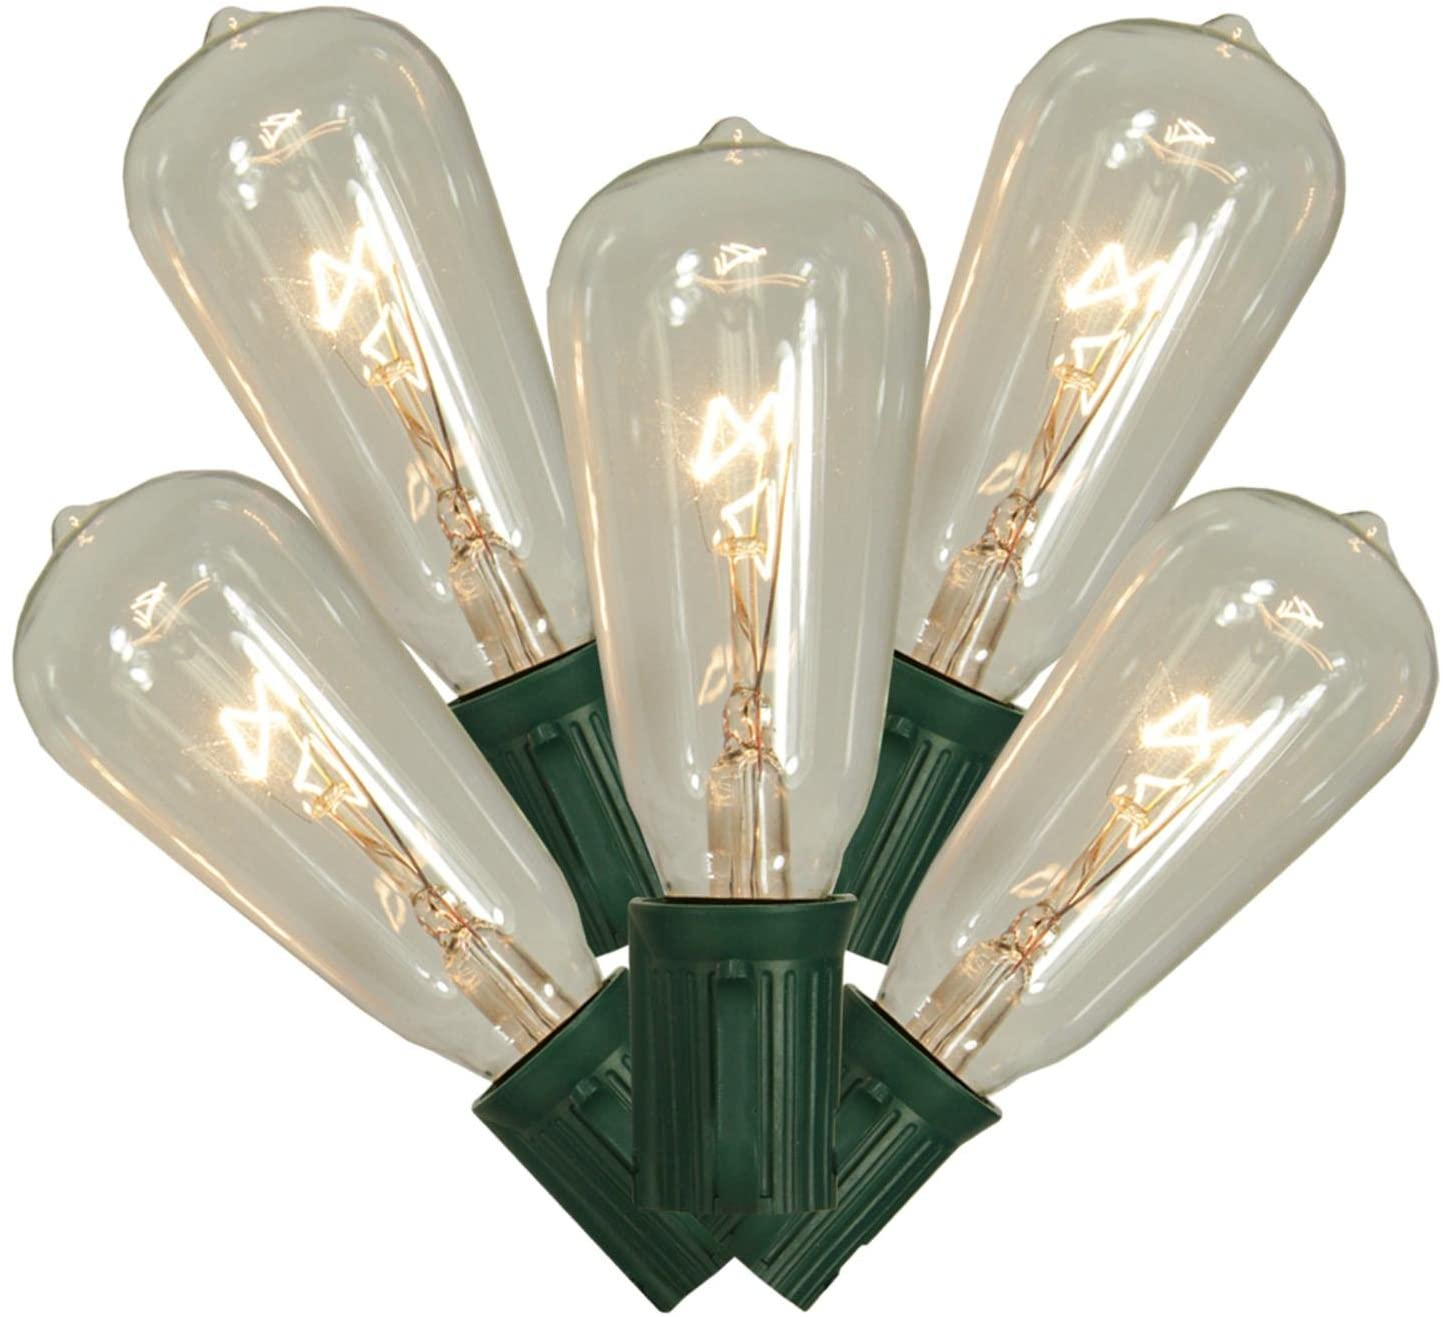 Vickerman Set of 10 Transparent Clear ST40 Edison Style Christmas Lights - Green Wire